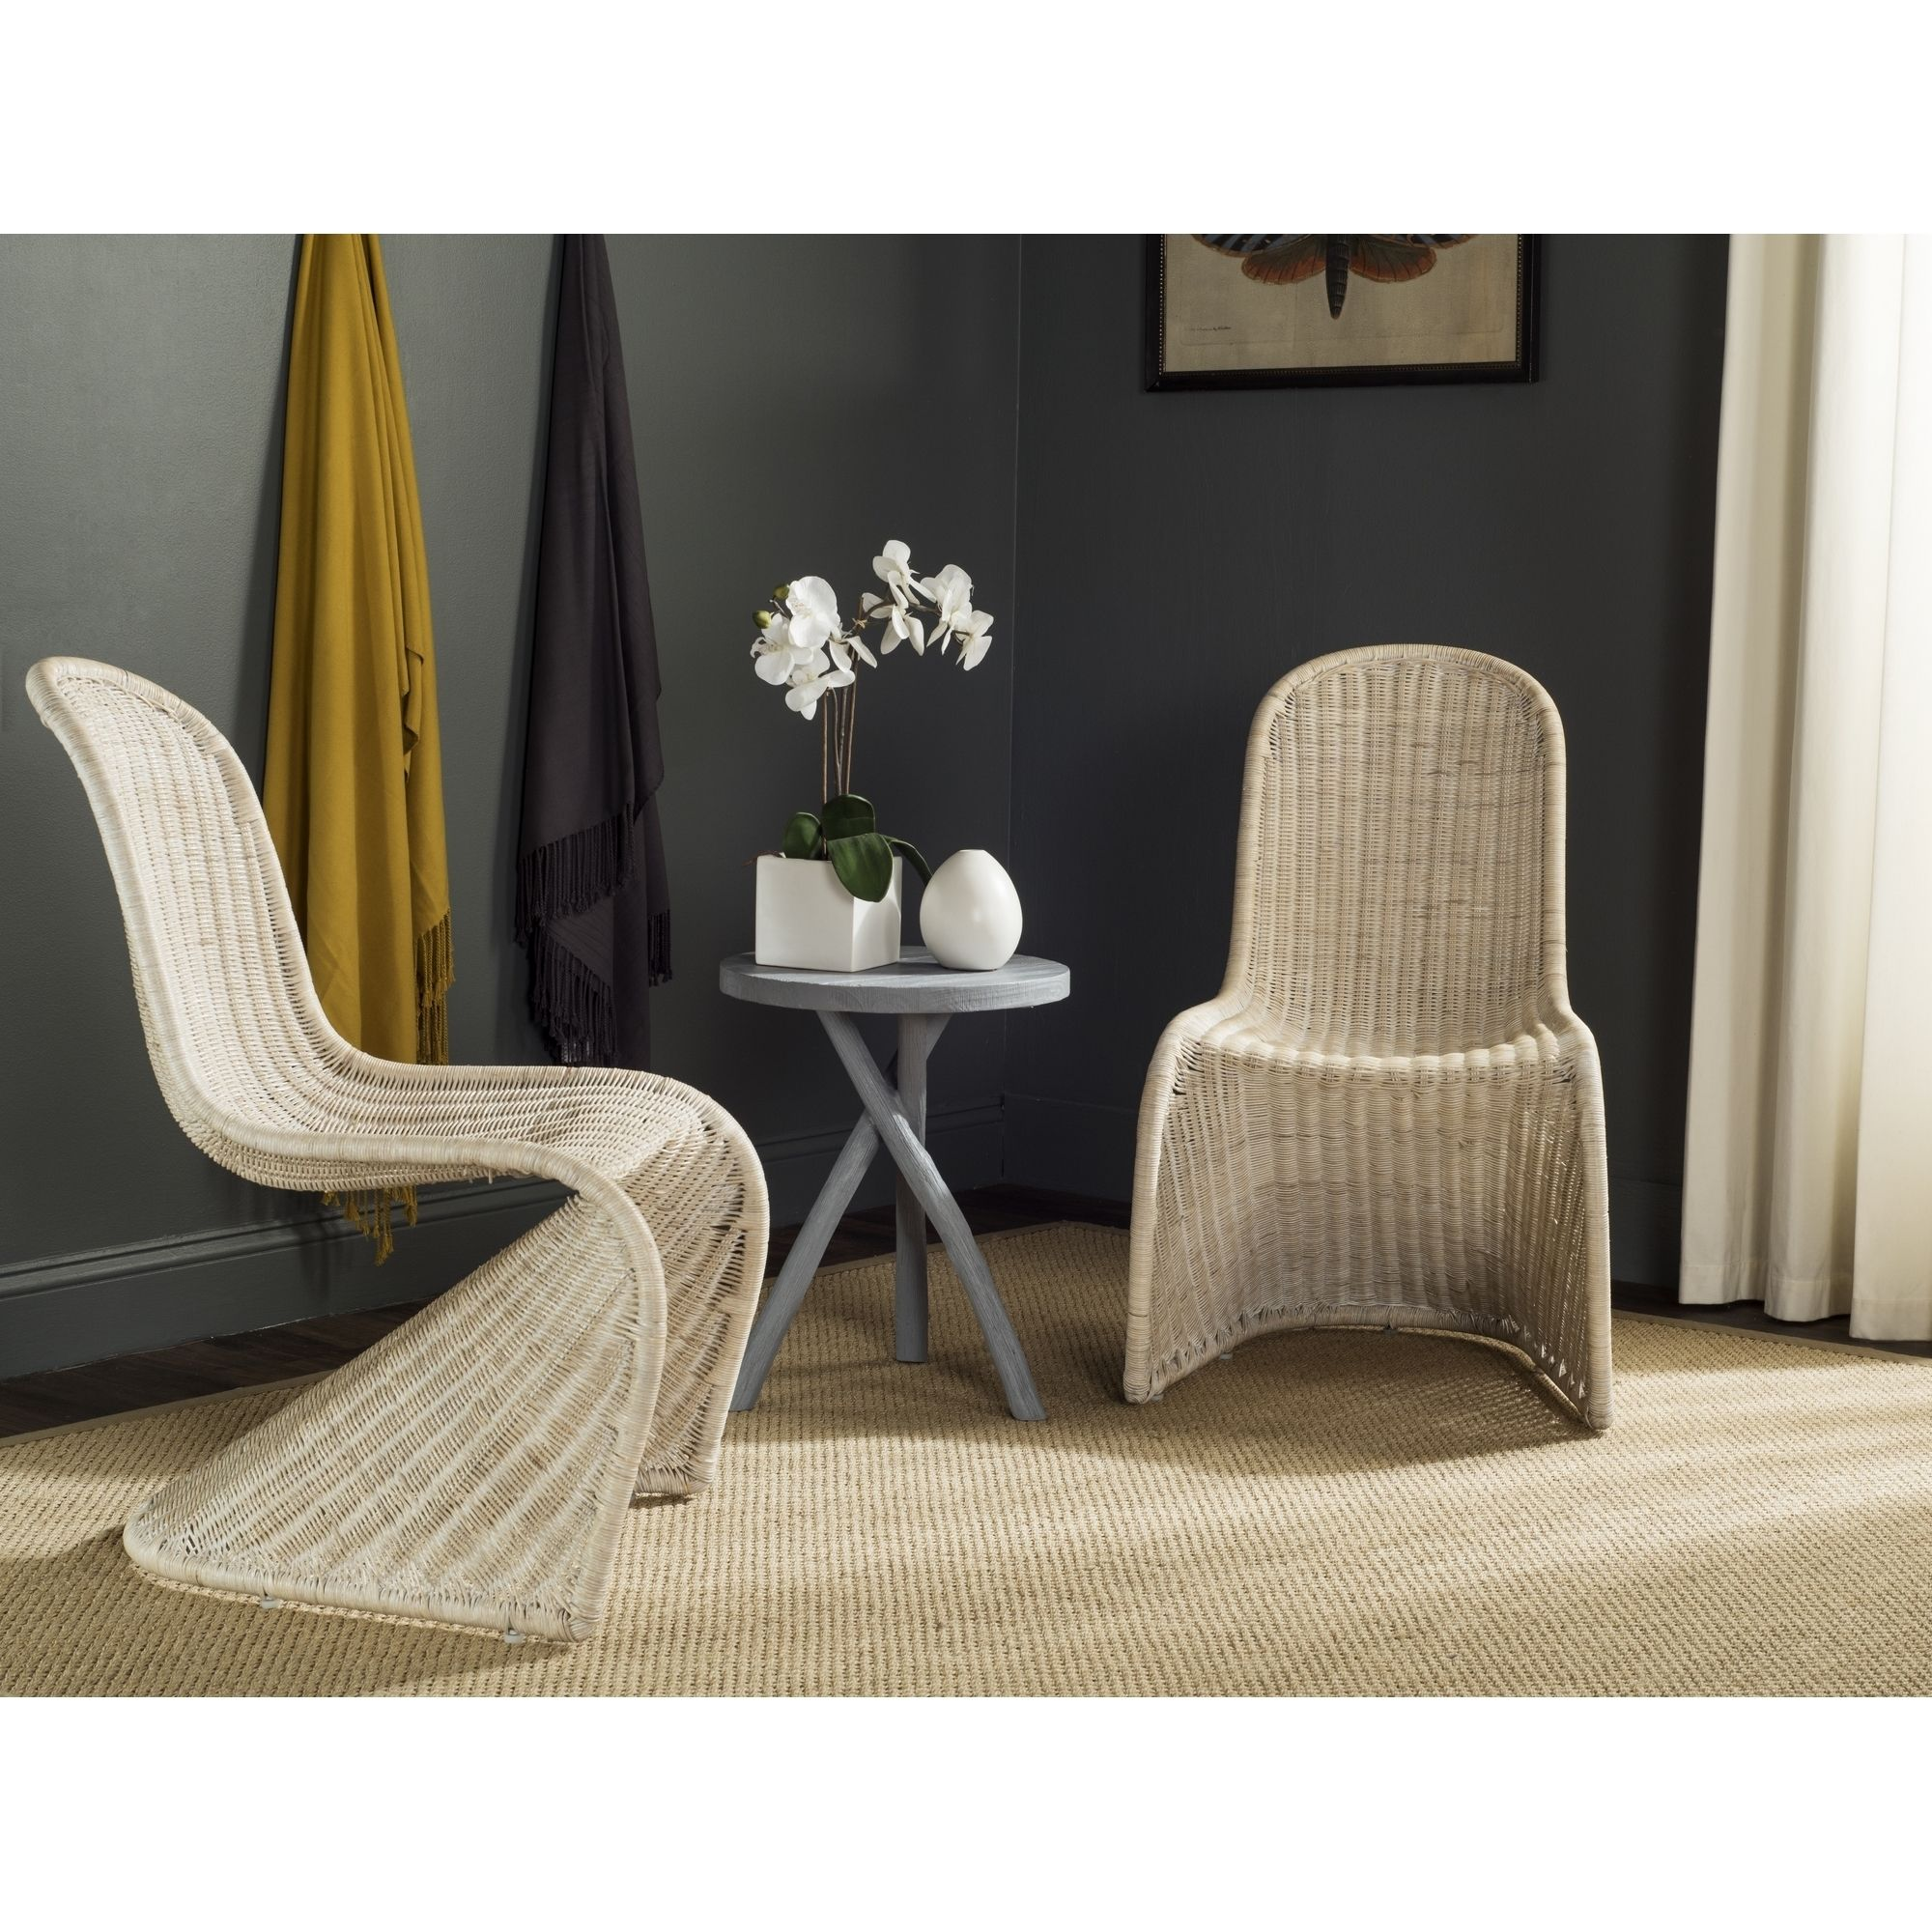 This contemporary wicker side chair is reminiscent of Verner Panton's Danish design classics.